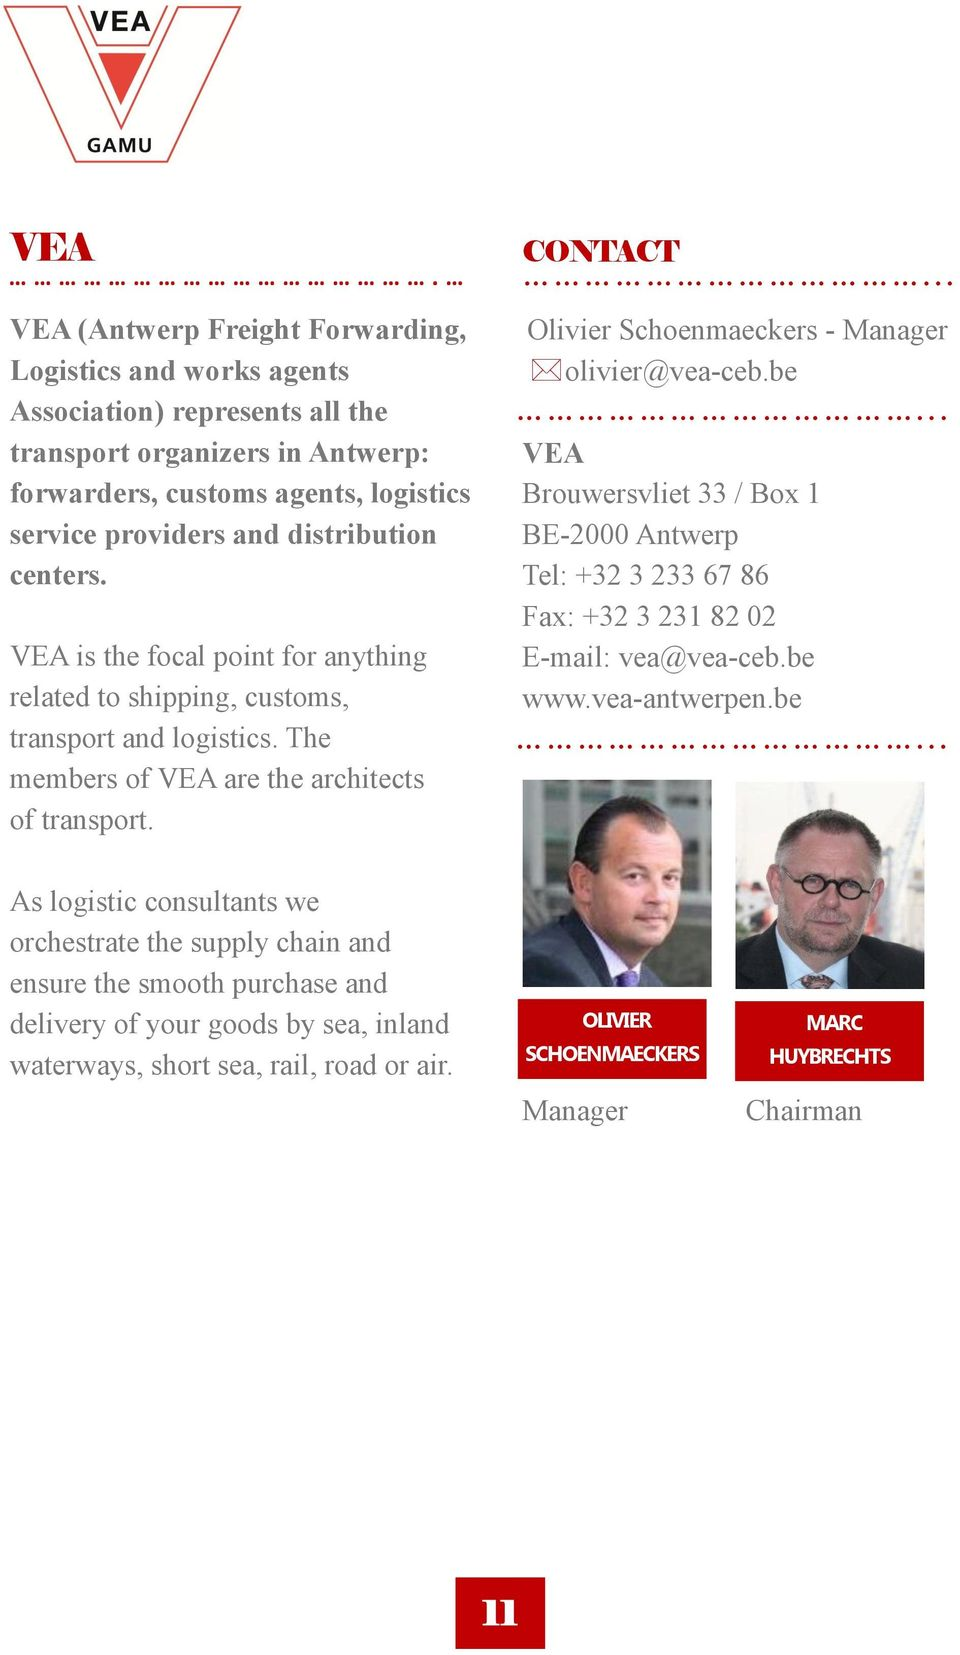 distribution centers. VEA is the focal point for anything related to shipping, customs, transport and logistics. The members of VEA are the architects of transport.